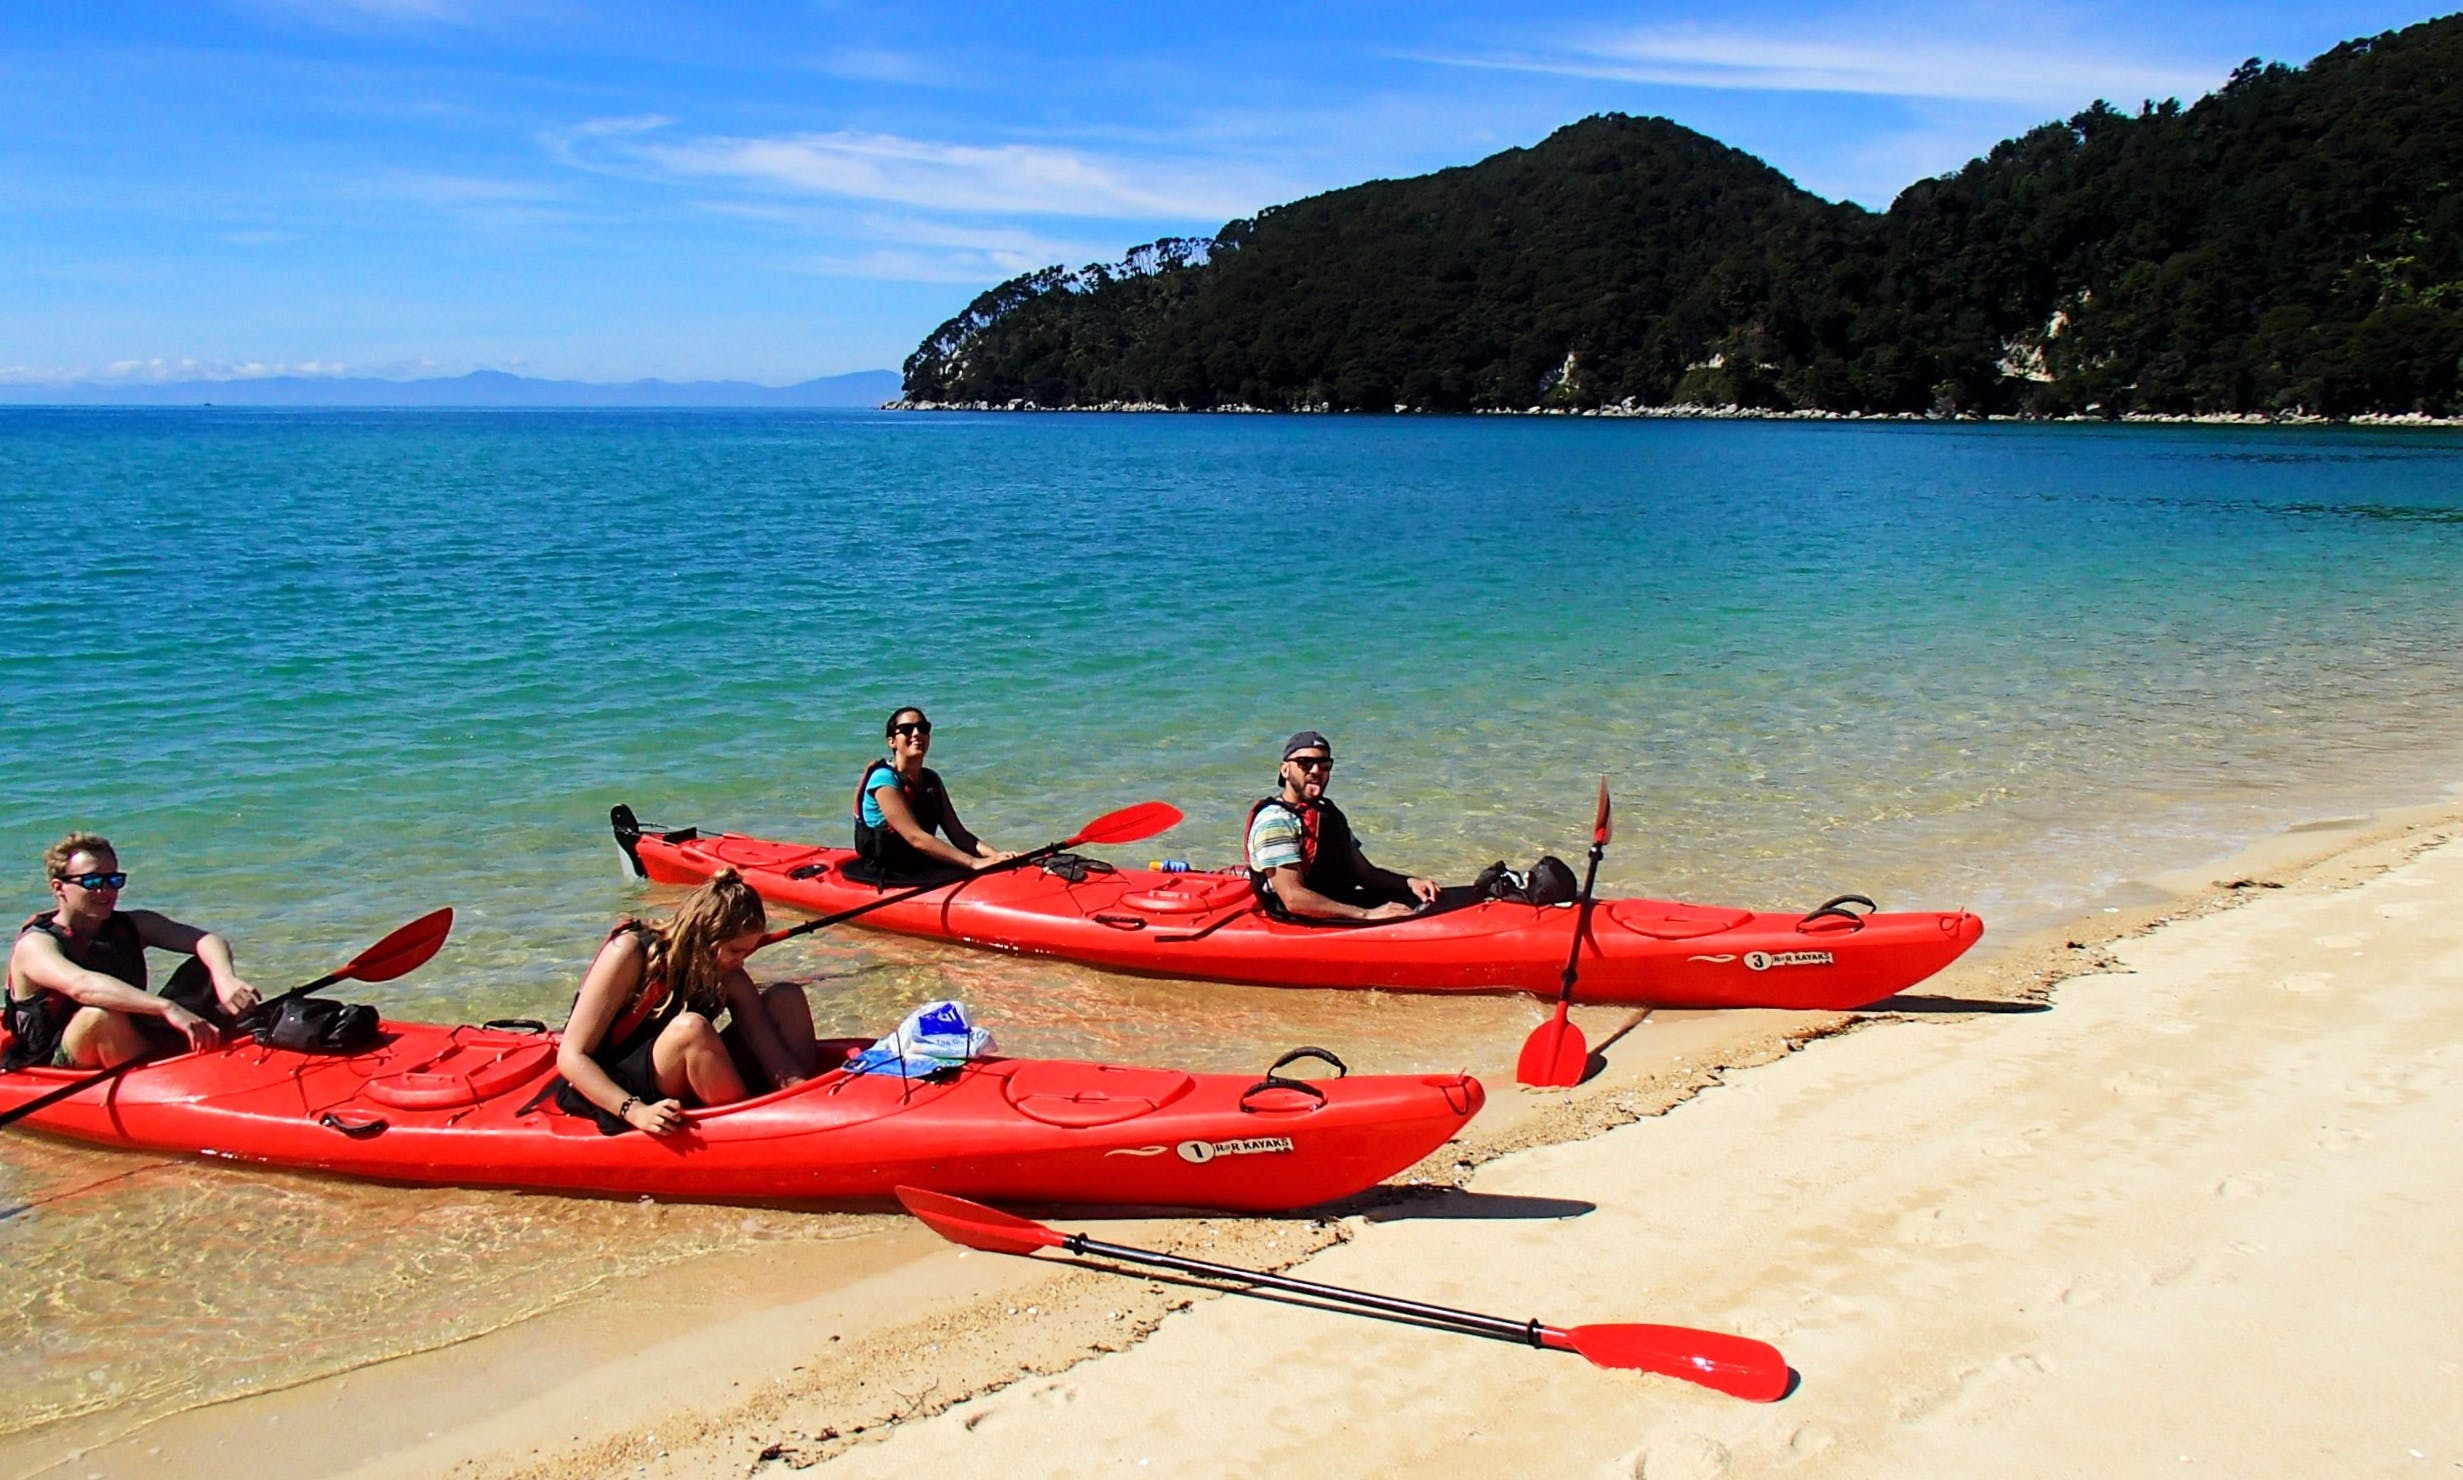 Guided Kayak Tour of Paradis Islands in Abel Tasman